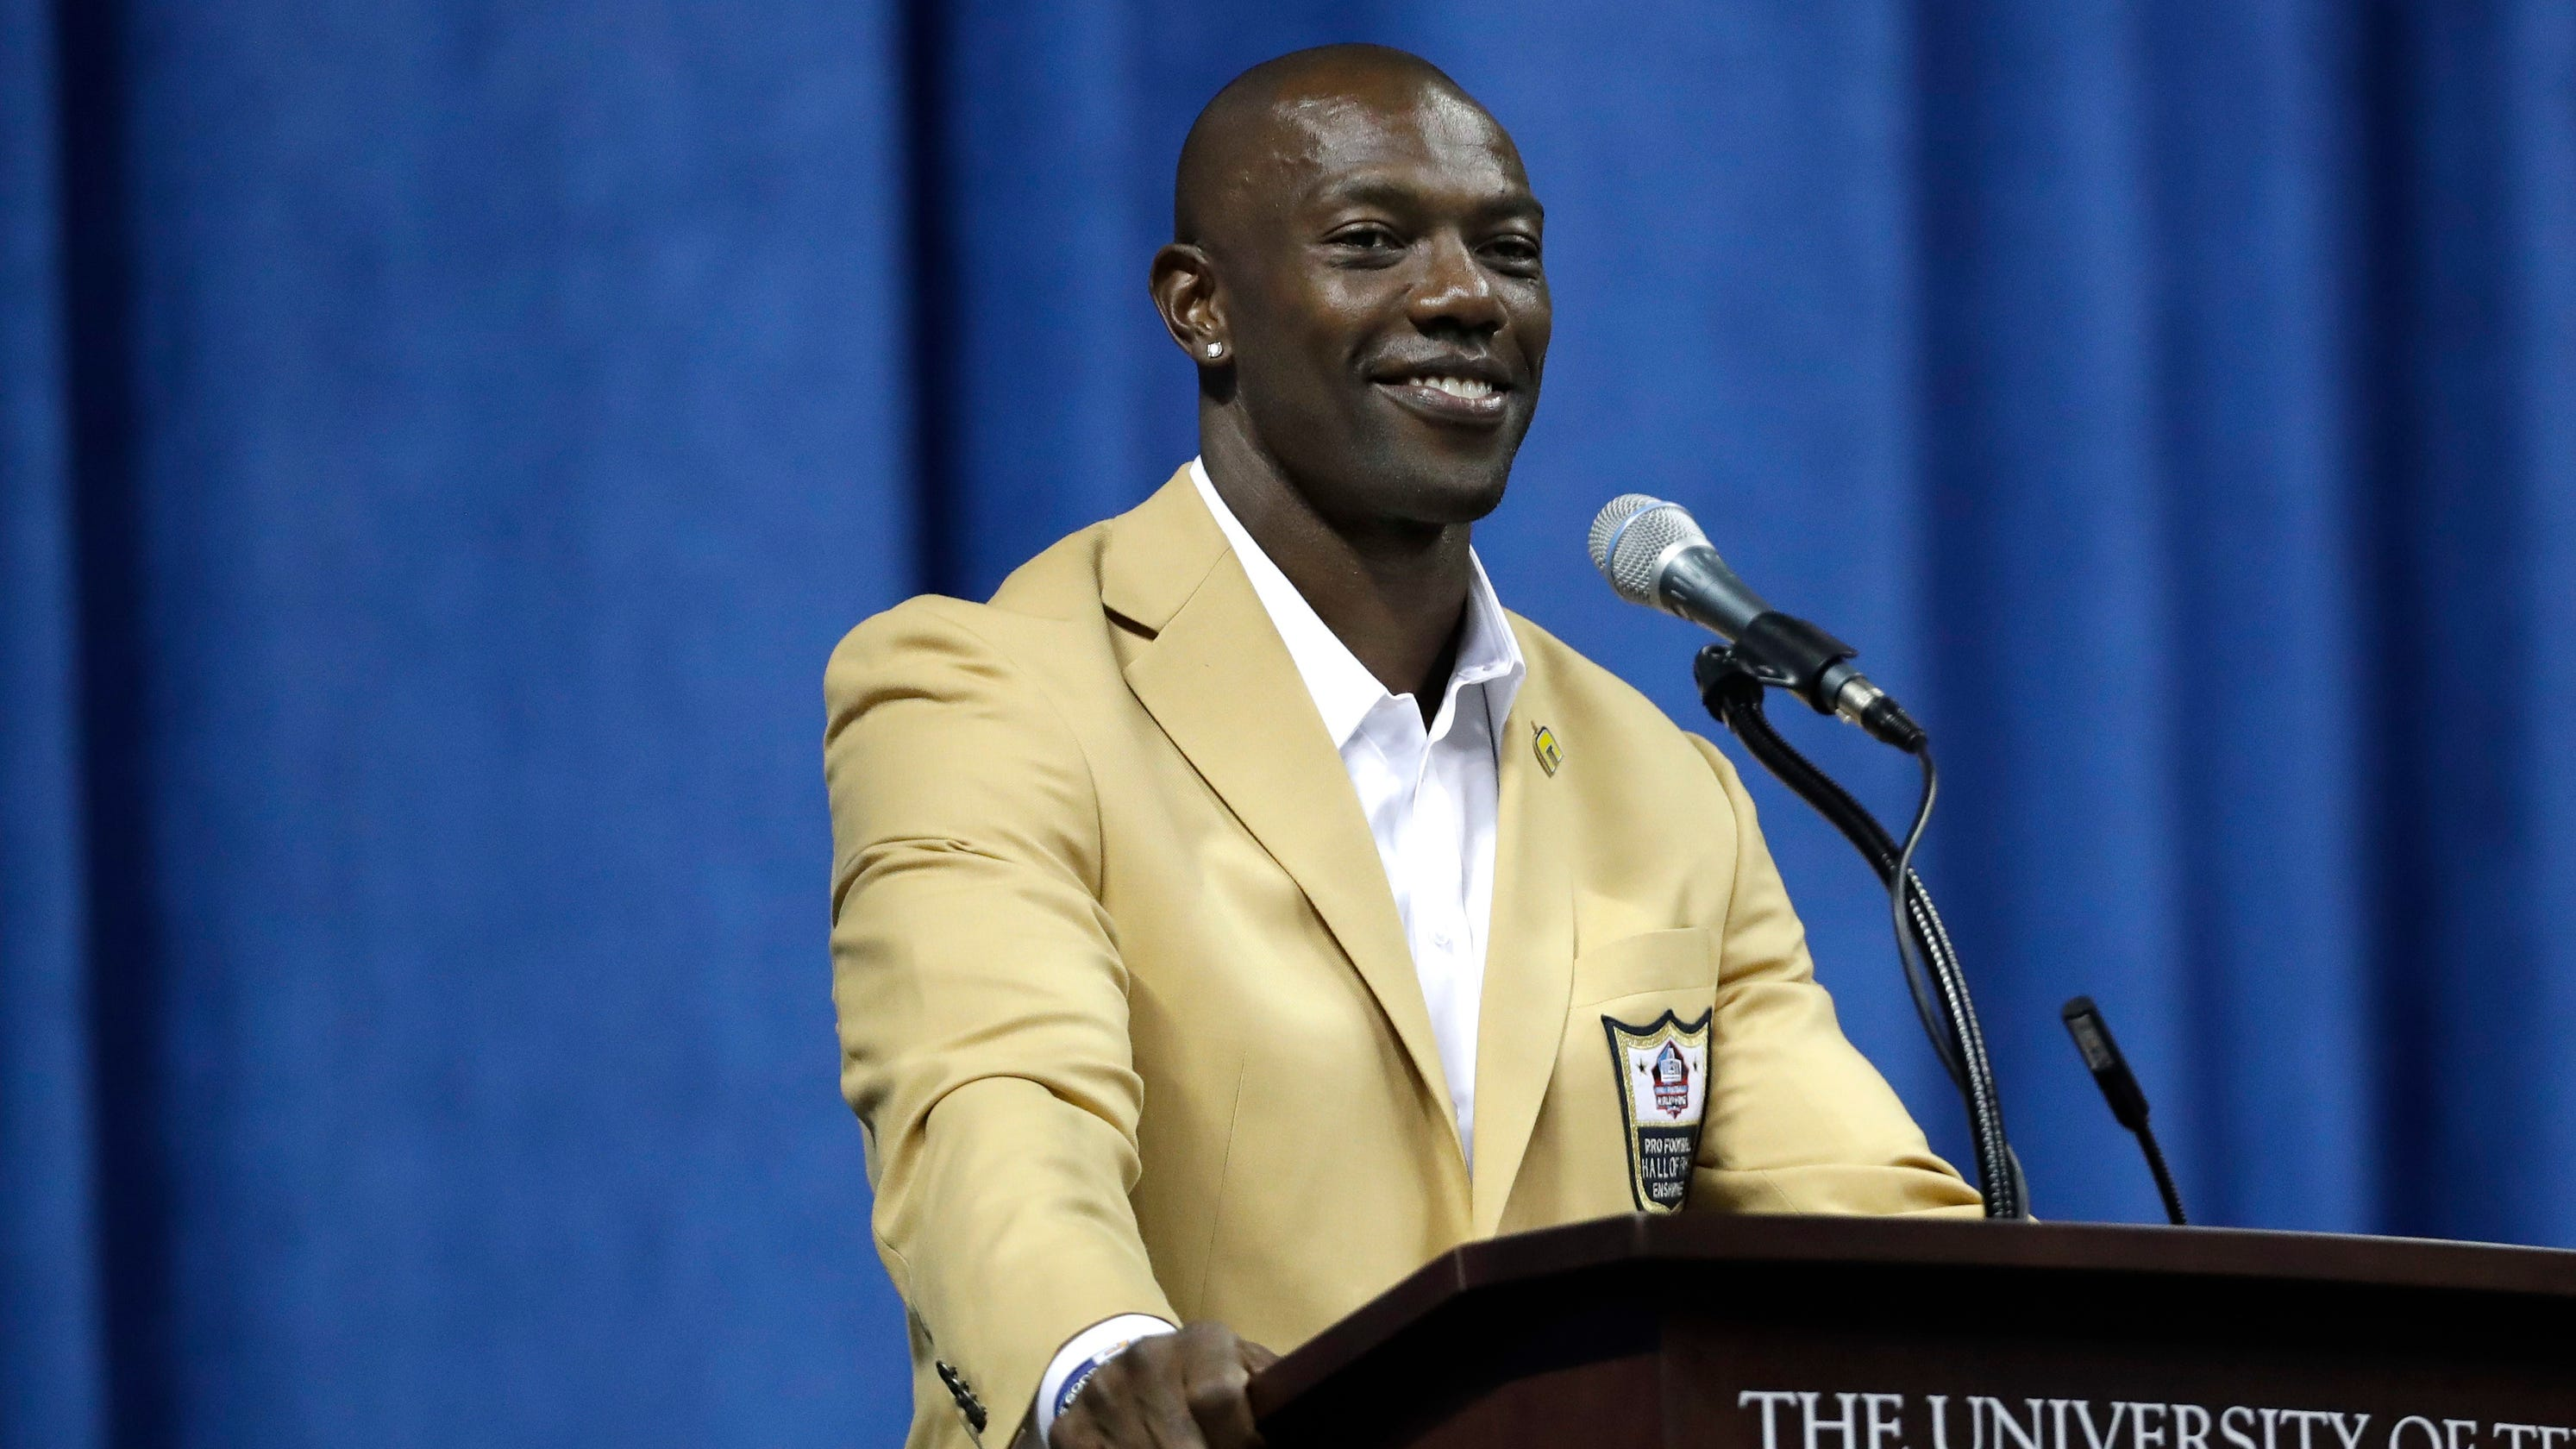 Terrell Owens works out for CFL team day after Hall of Fame induction 001fc74f8